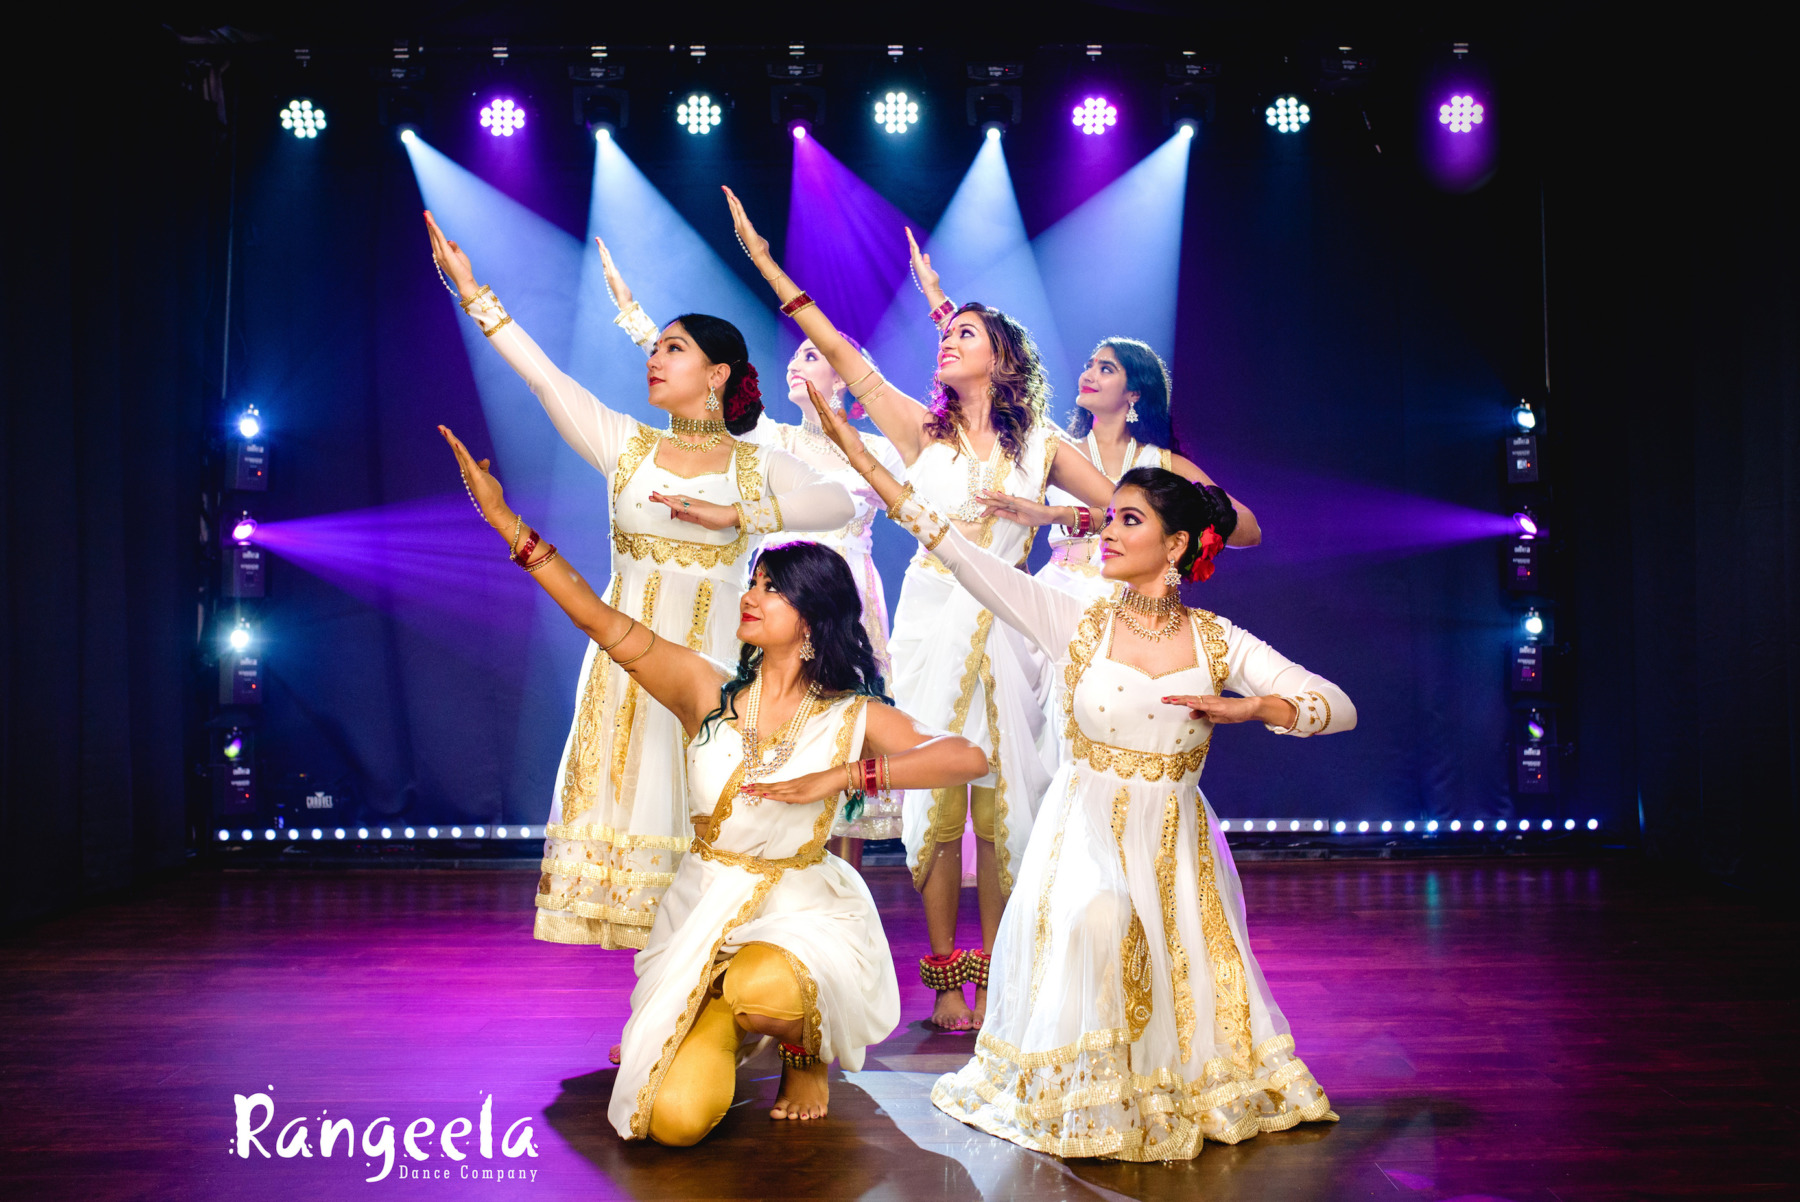 Priyanka performing with 5 other dancers from Rangeela Dance Company, dressed in modern anarkali suits in white and gold.